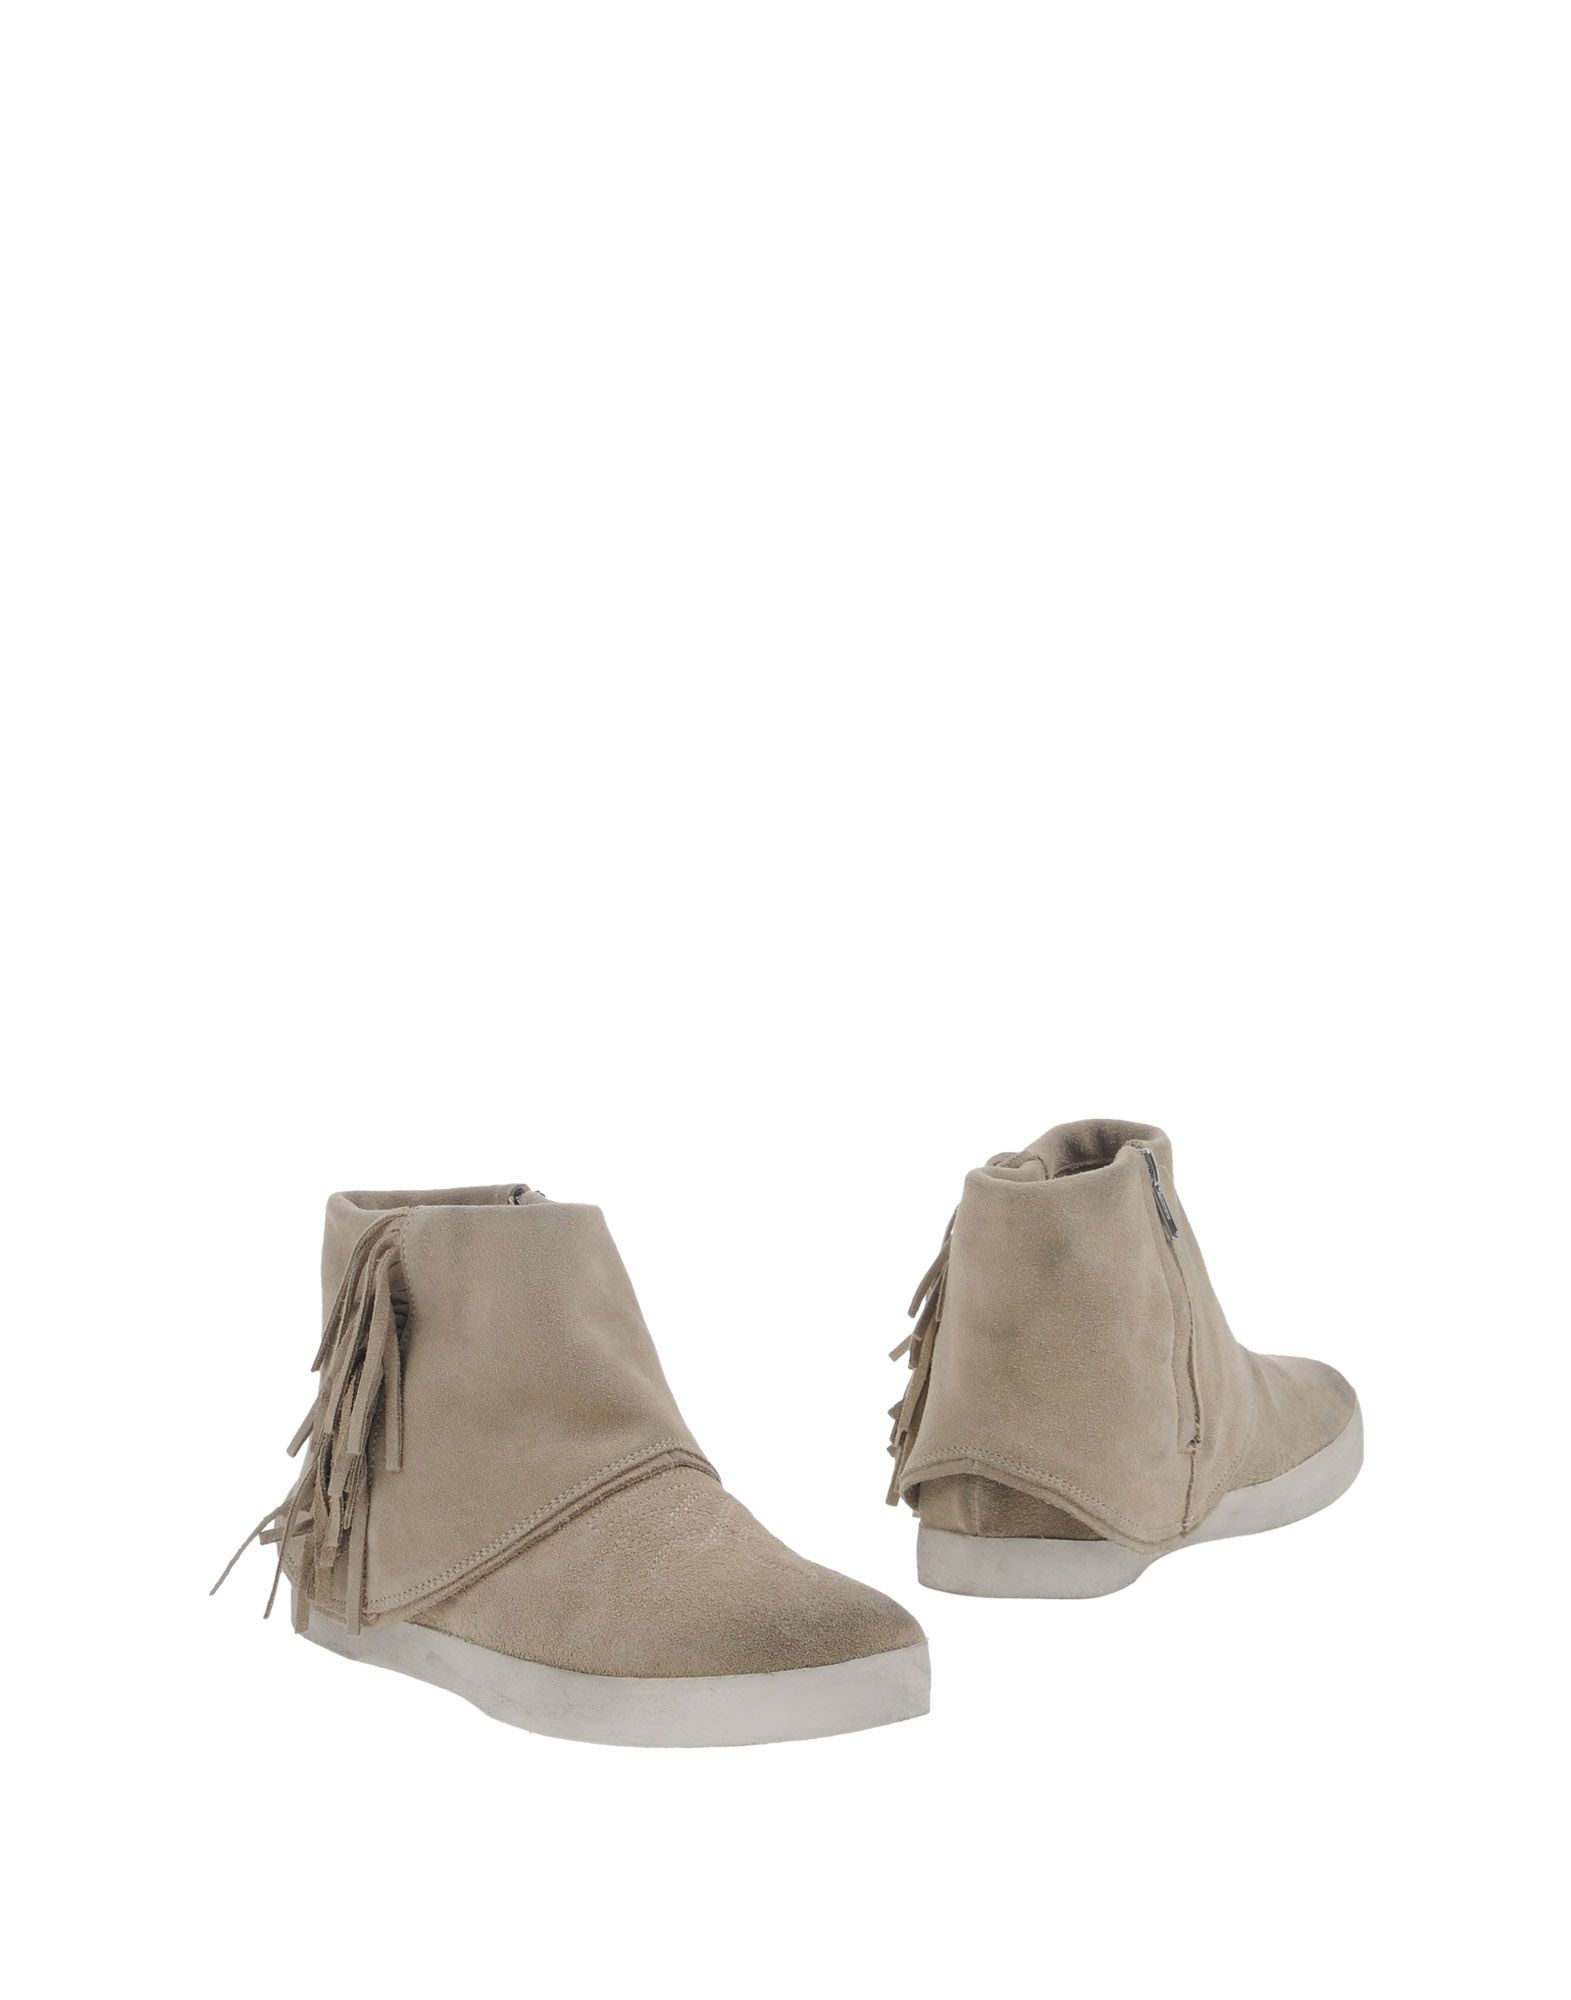 CATARINA MARTINS Ankle Boot in Beige